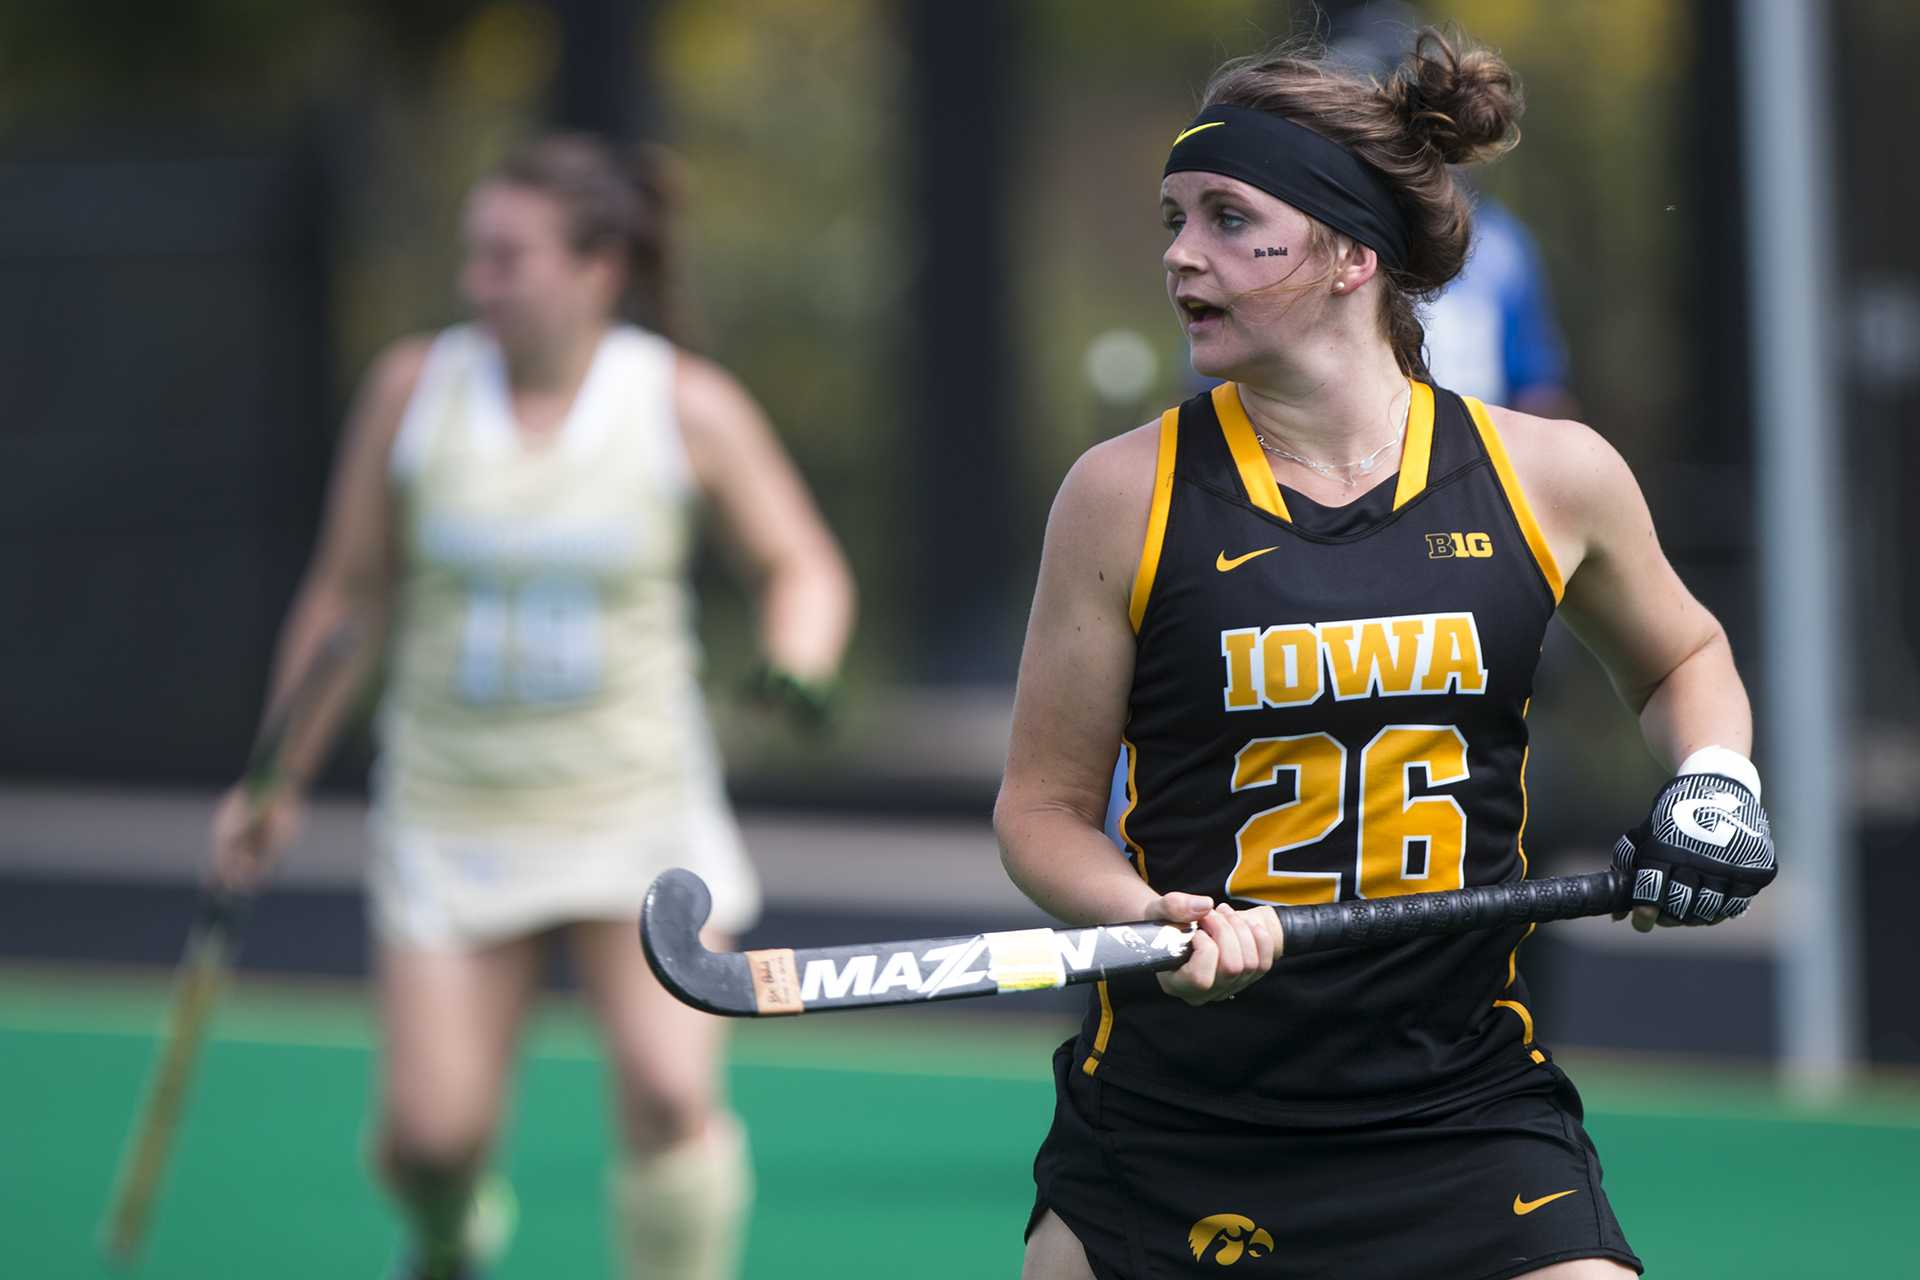 Iowa forward Madeline Murphy looks to a teammate during a field hockey game during the Big Ten/ACC Challenge at Grant Field in Iowa City on Saturday, Aug. 26, 2017. The Hawkeyes fell to Wake Forest, 3-2. (Joseph Cress/The Daily Iowan)